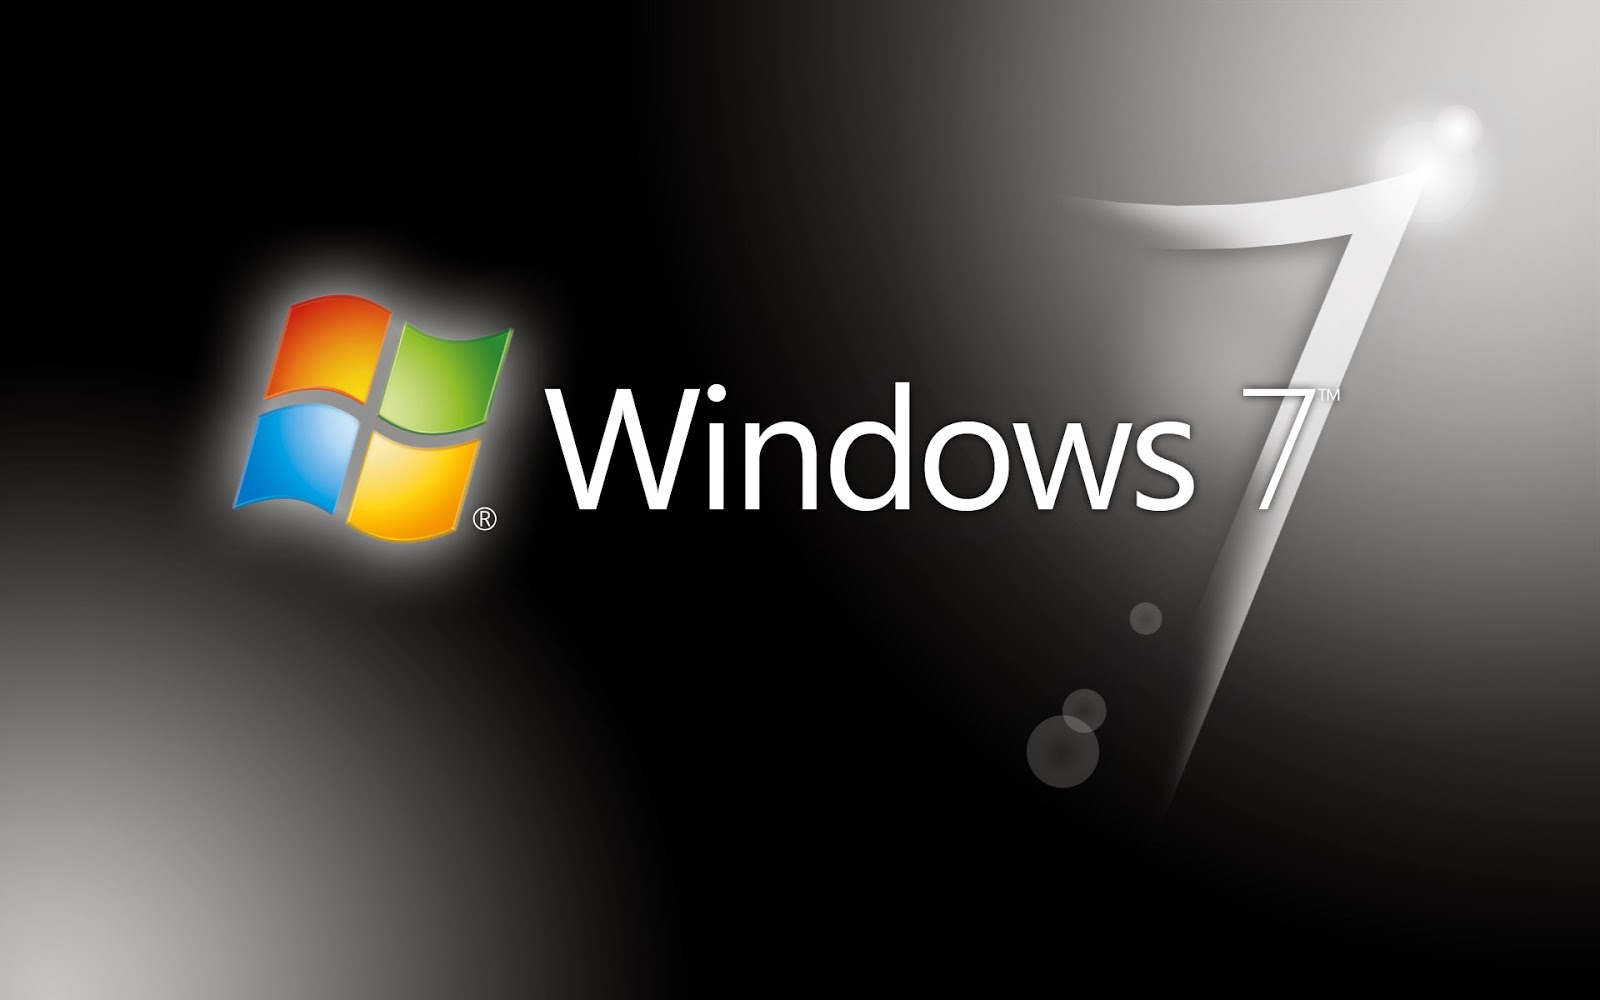 Windows 7 Wallpaper HD Pack